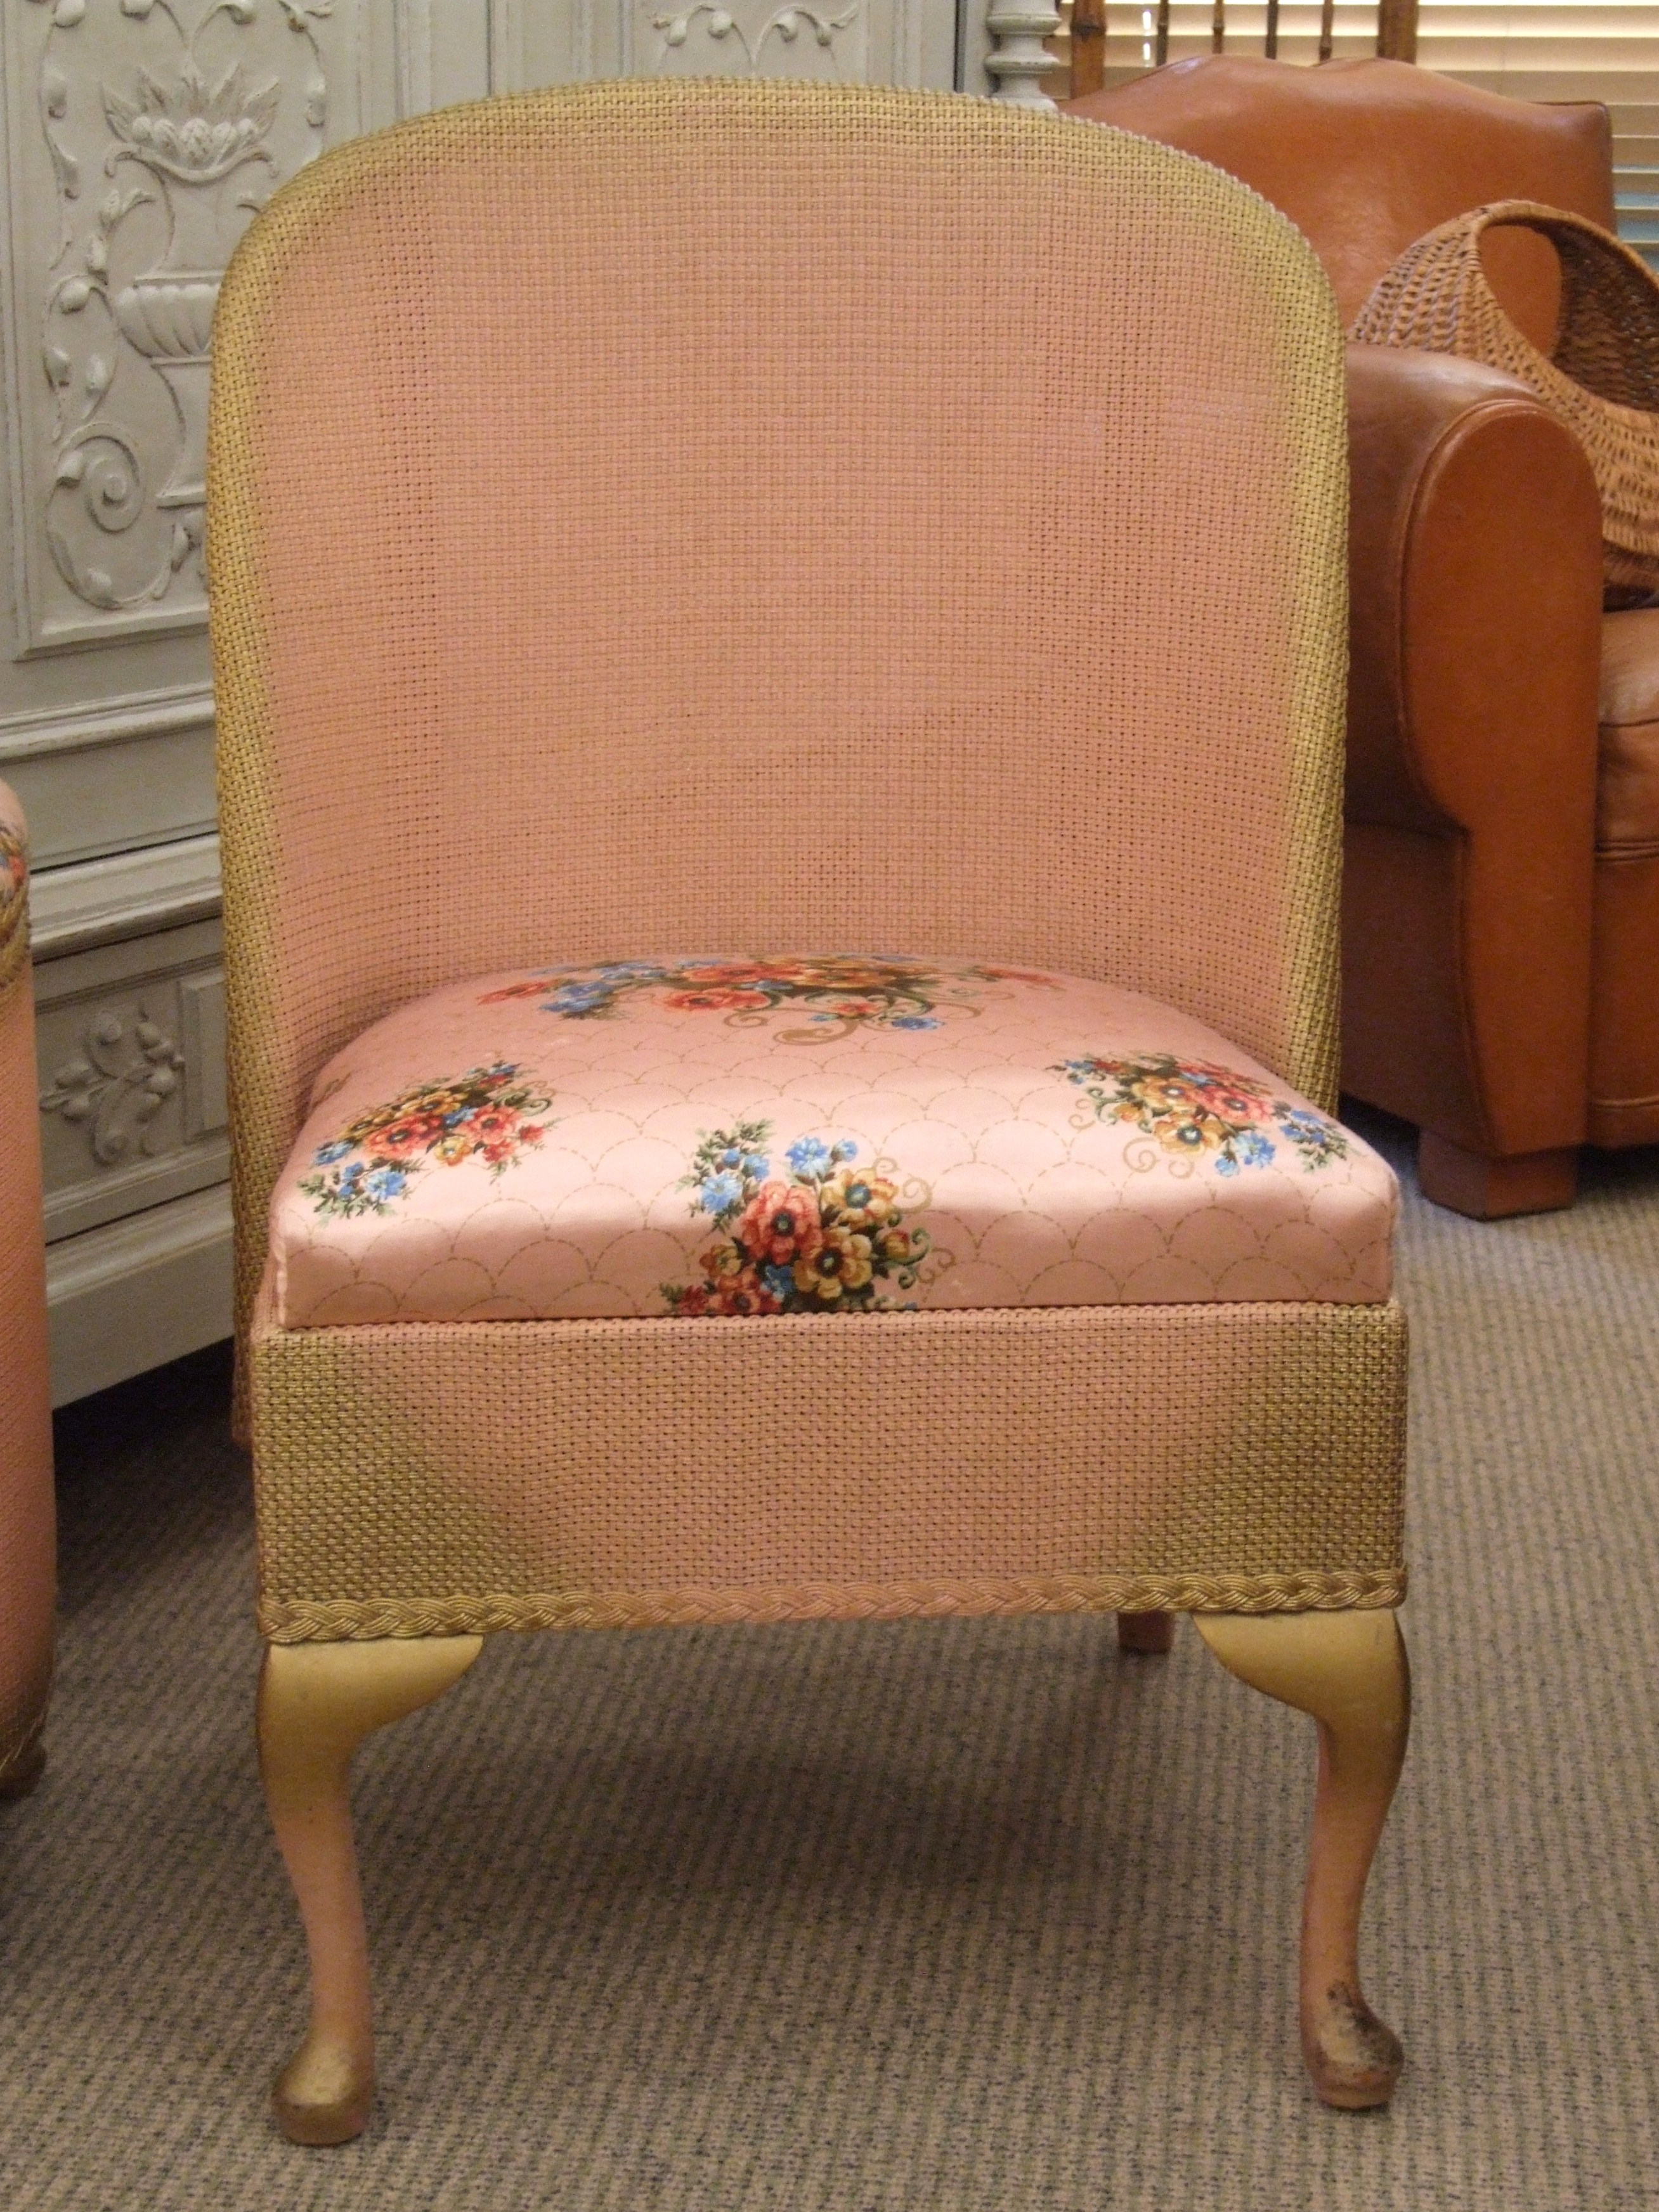 f403 s charming vintage pink bedroom chair and ottoman